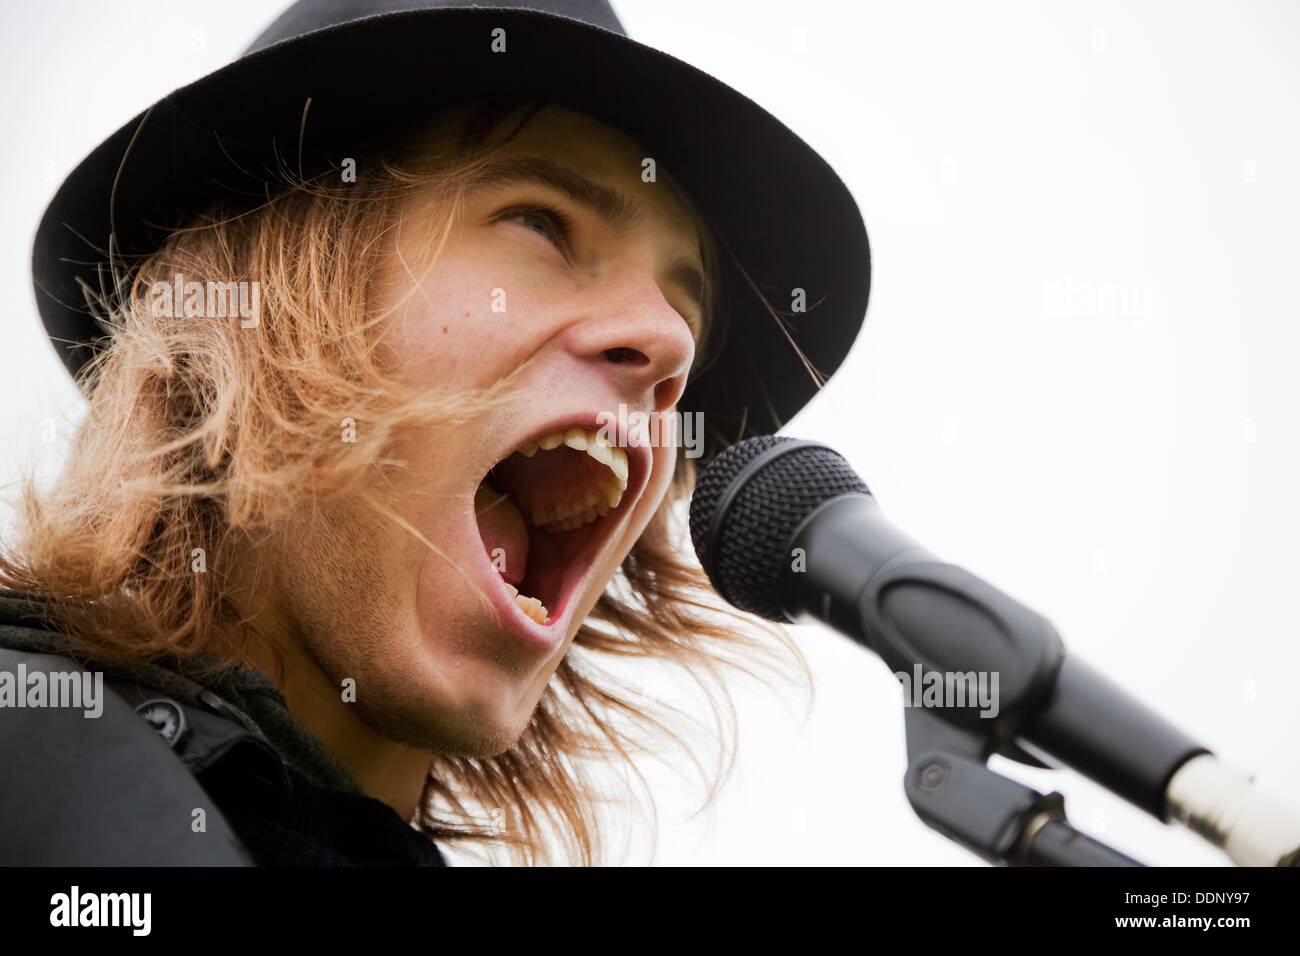 Young man in hat singing to microphone - Stock Image